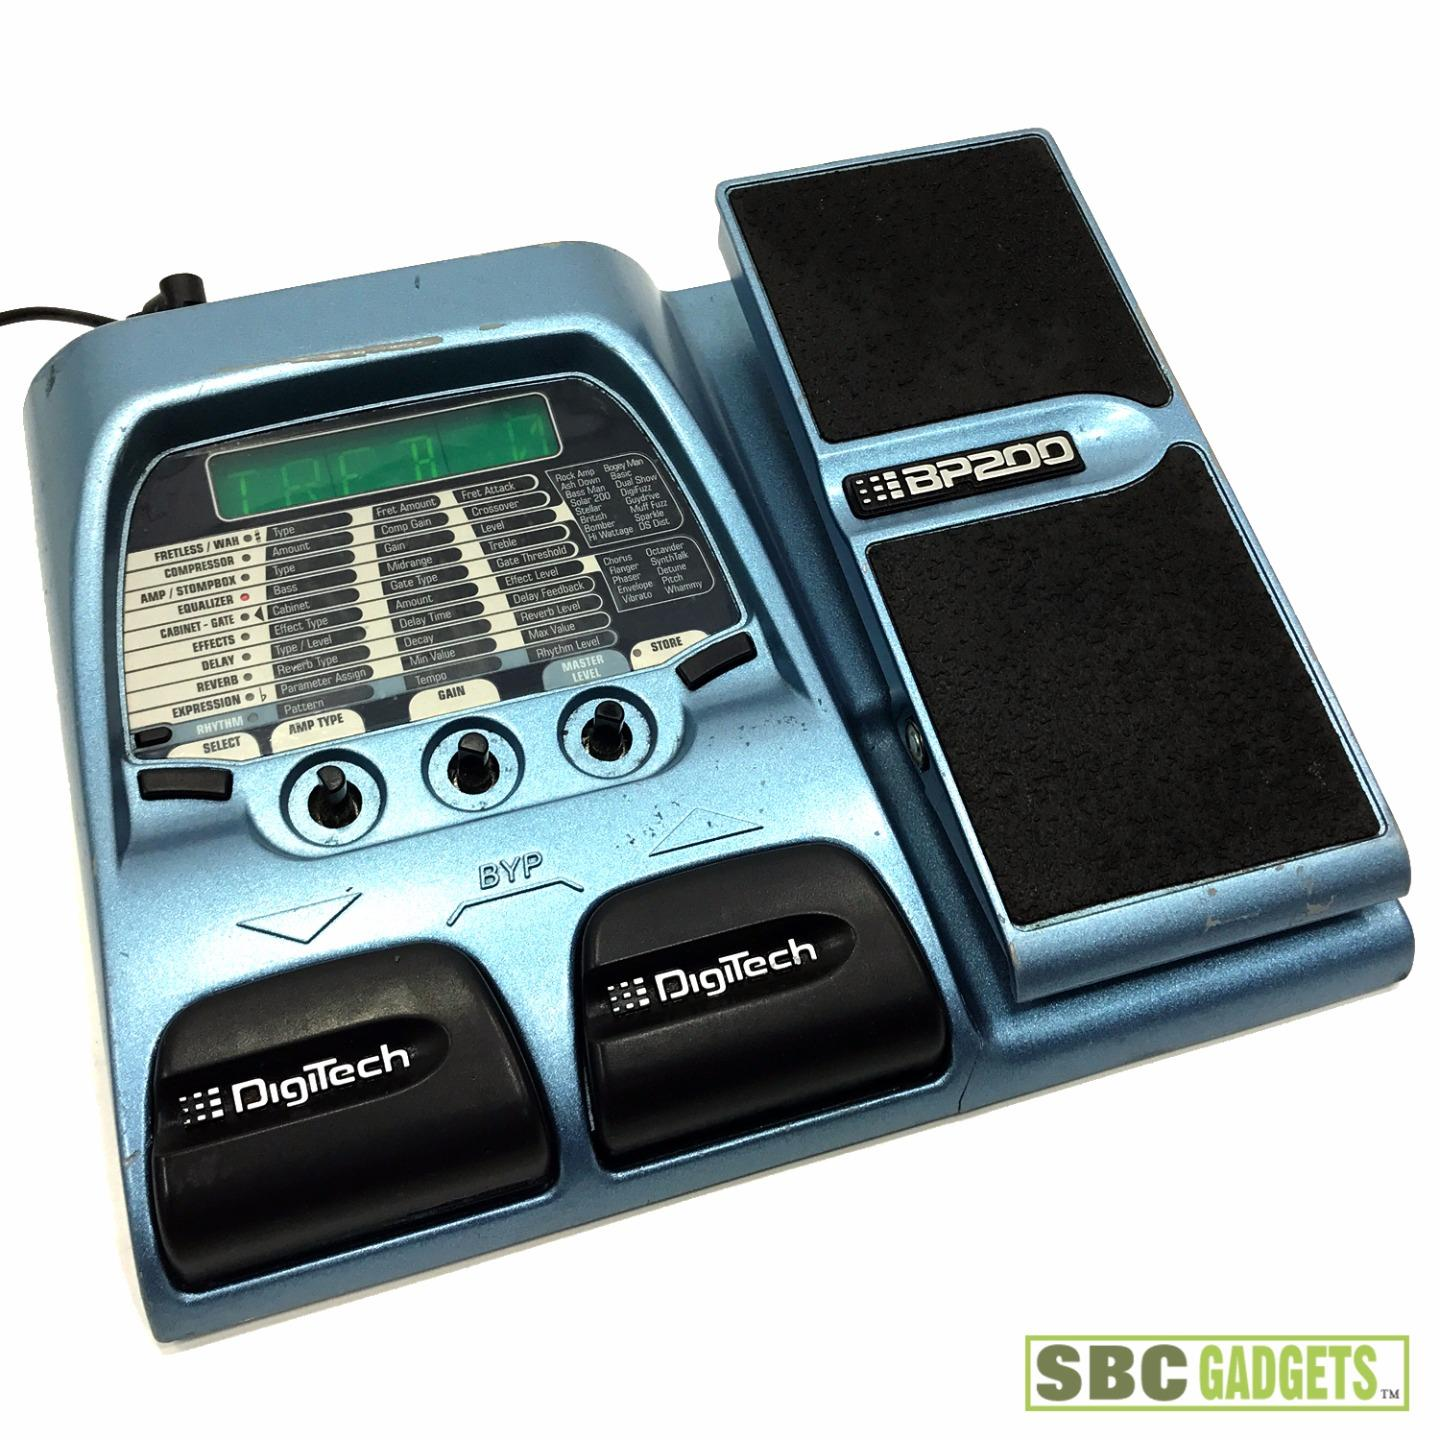 digitech multi effects bass guitar effects pedal model bp200 691991200359 ebay. Black Bedroom Furniture Sets. Home Design Ideas